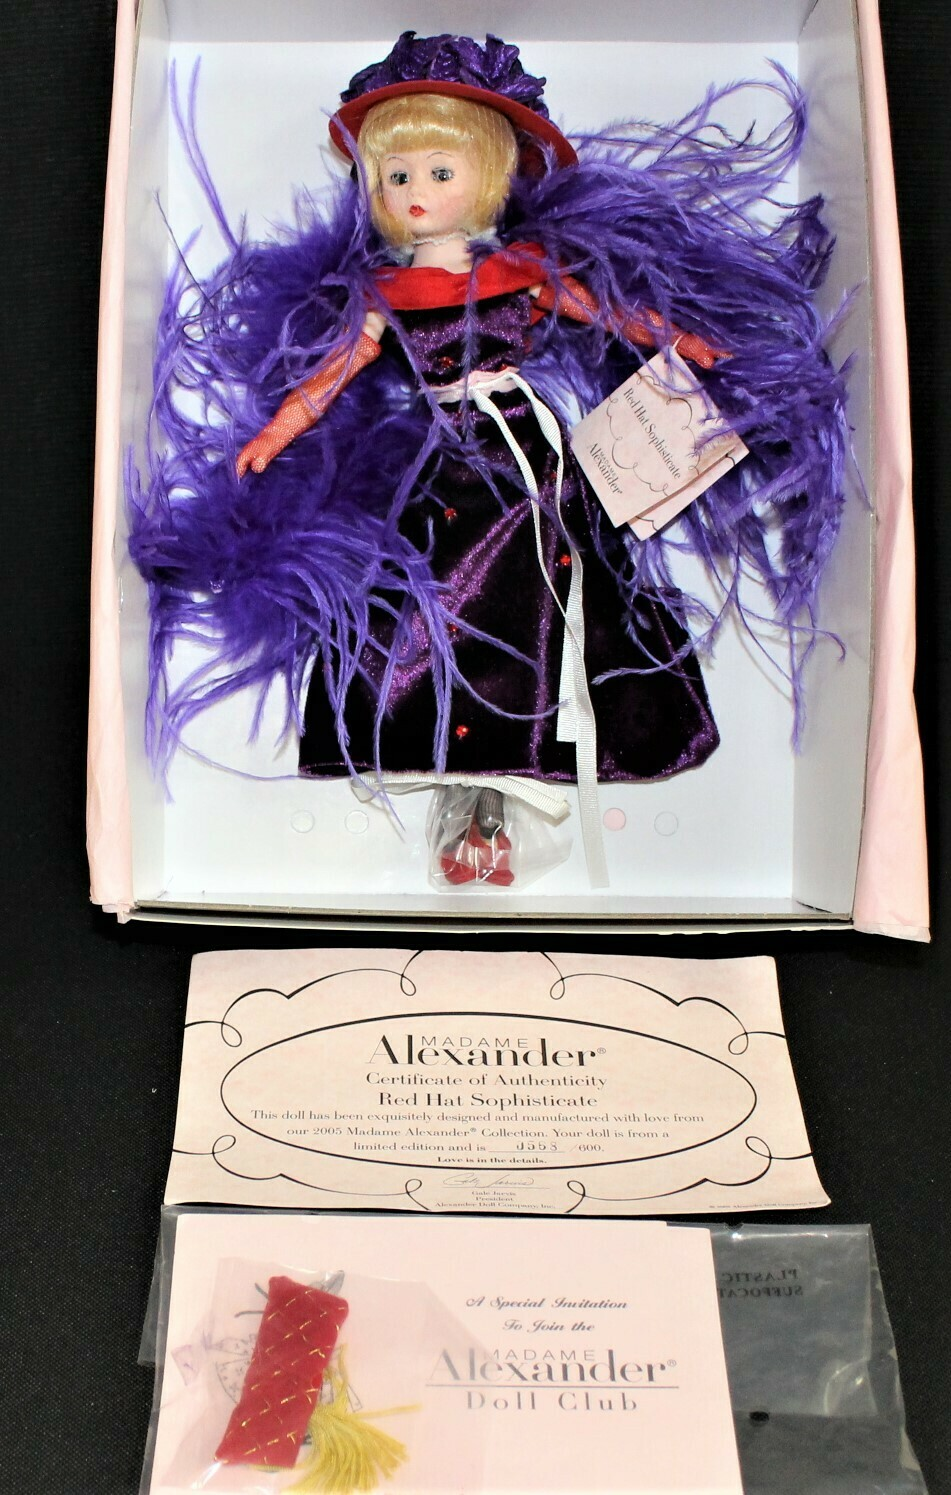 Madame Alexander Red Hat Sophisticate 40855 Doll #568/600 w/ COA & Original Box